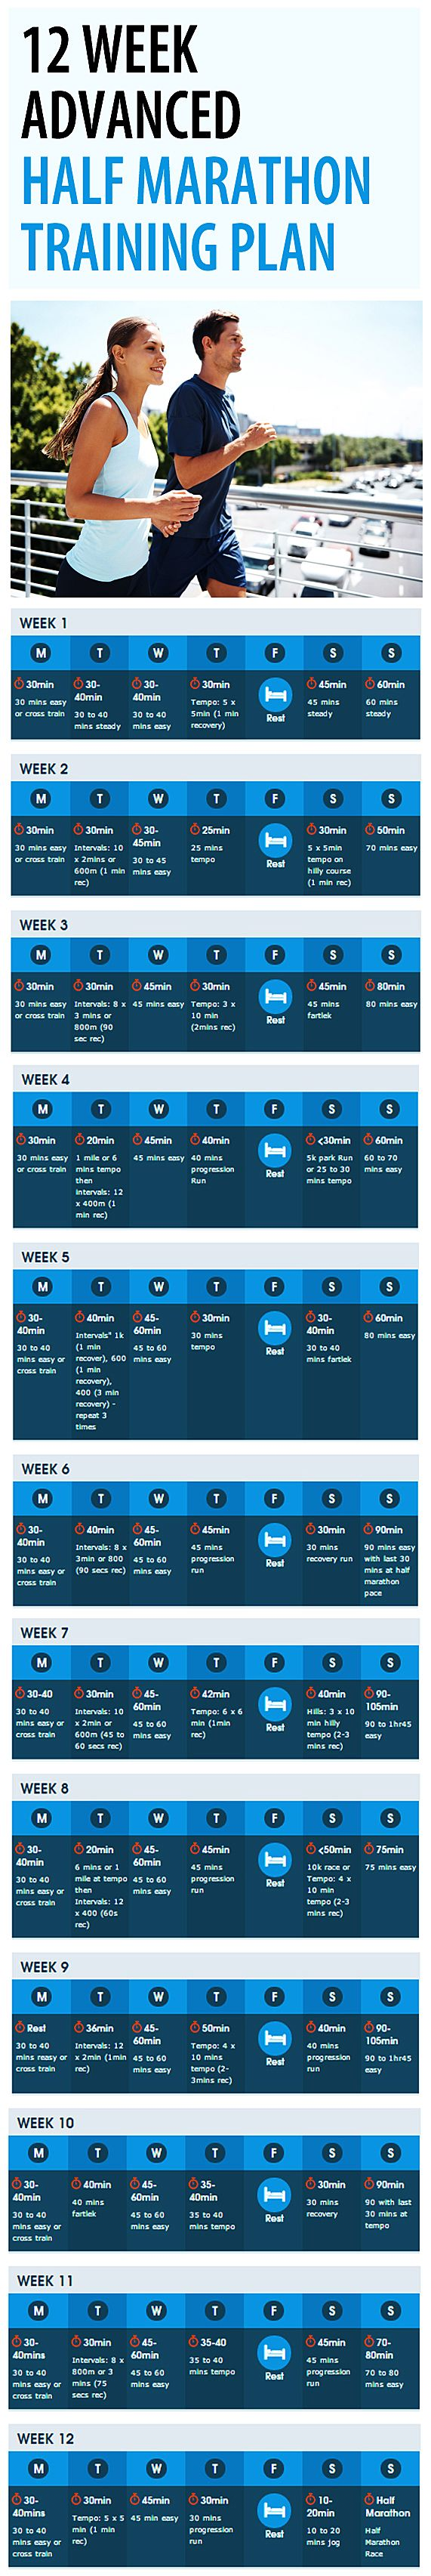 12 WEEK ADVANCED HALF MARATHON TRAINING PLAN. Join our Half Marathon Training Group to get support and advice to achieve your goals! #EncoreRehab